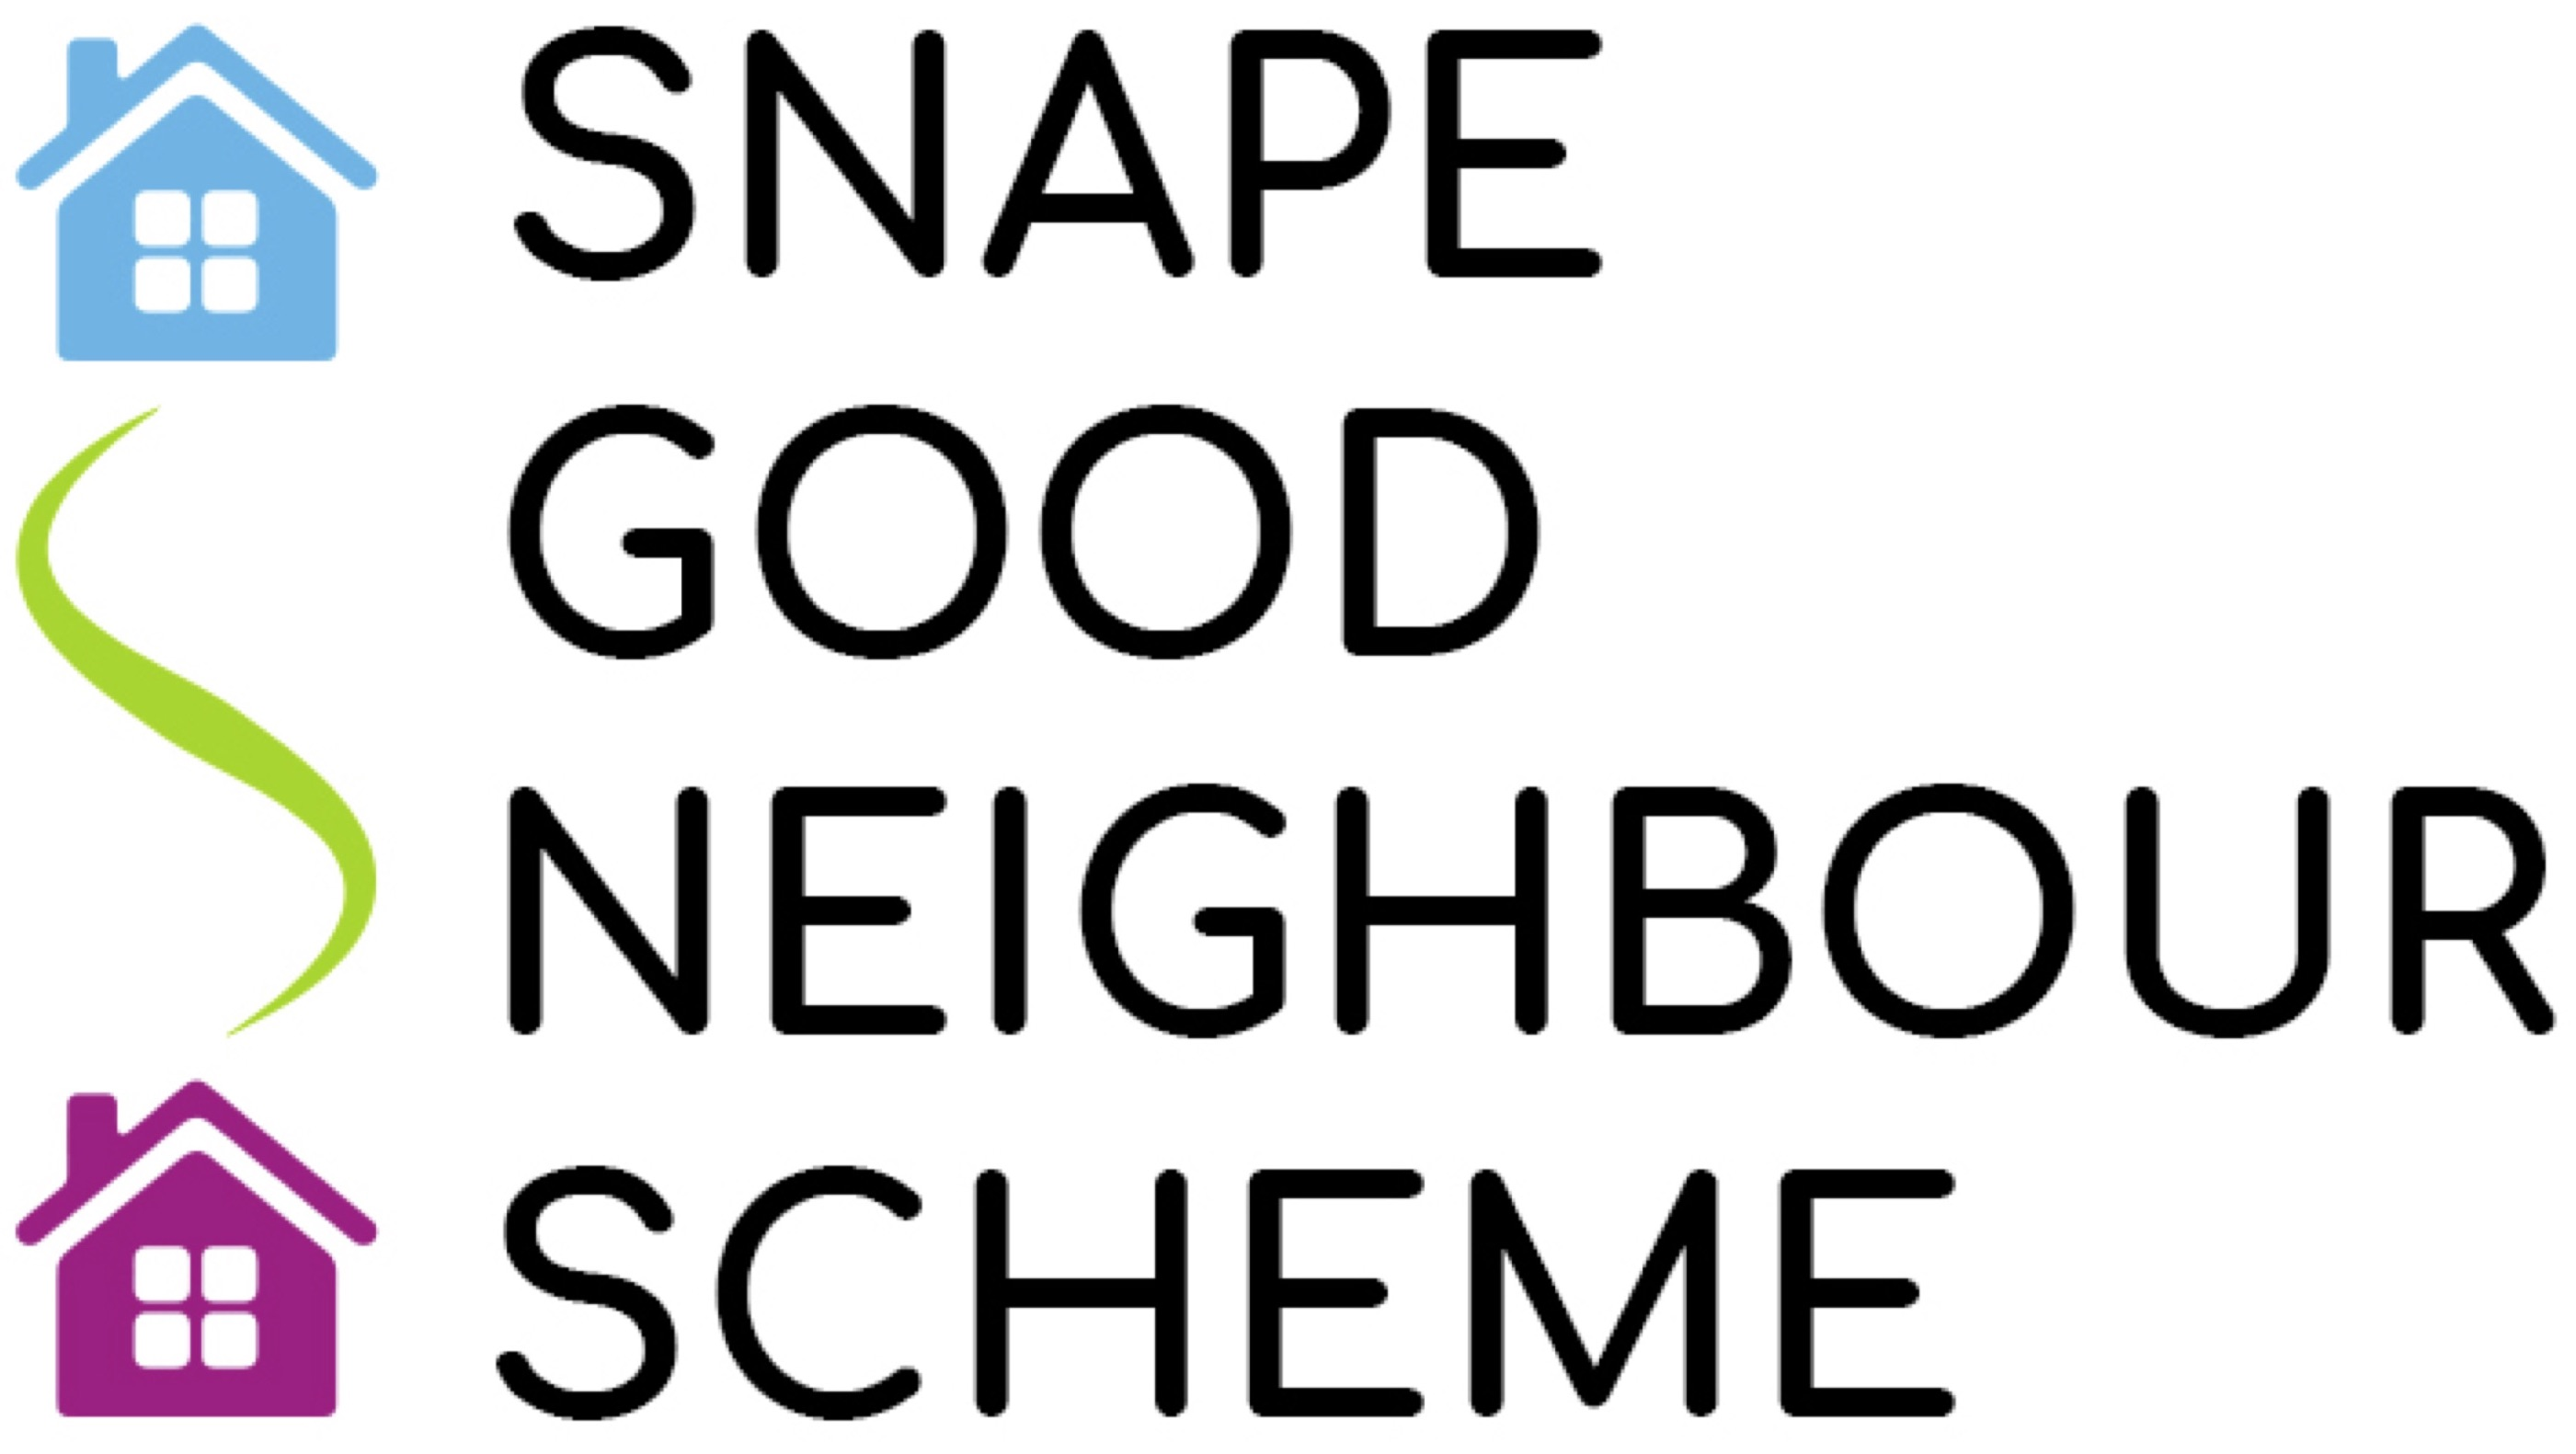 Snape Good Neighbour Scheme logo, which appears on Volunteers' passes